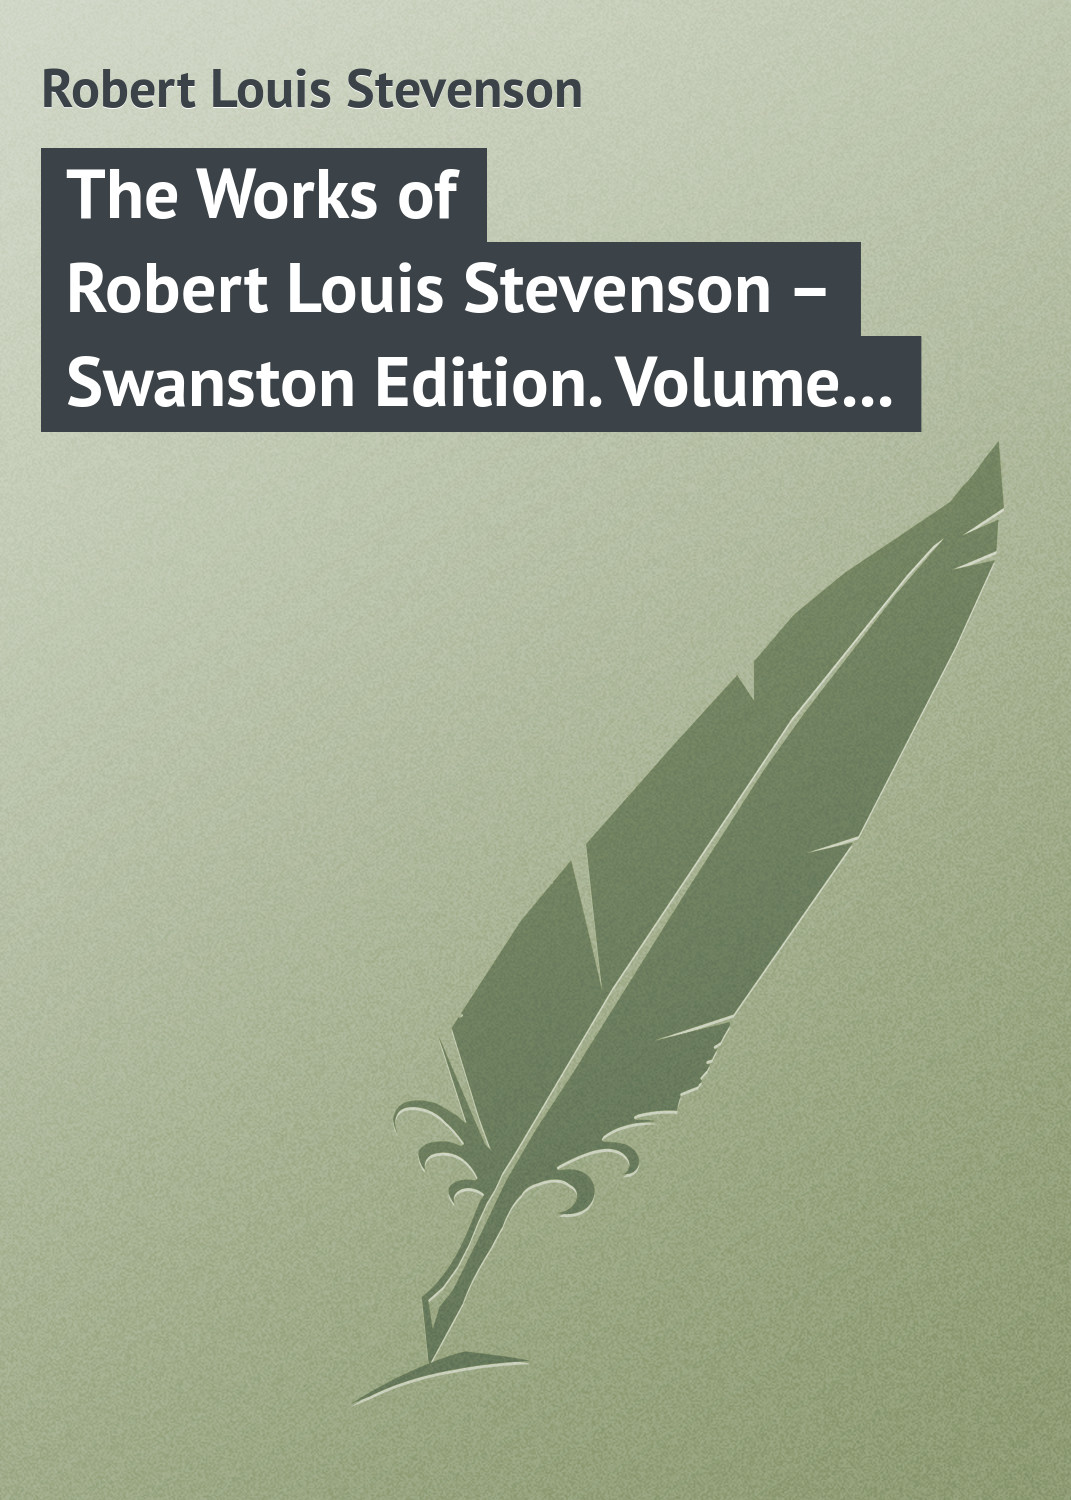 Роберт Льюис Стивенсон The Works of Robert Louis Stevenson – Swanston Edition. Volume 17 автовоз dickie toys city цвет синий 44 5 см 1 машинка